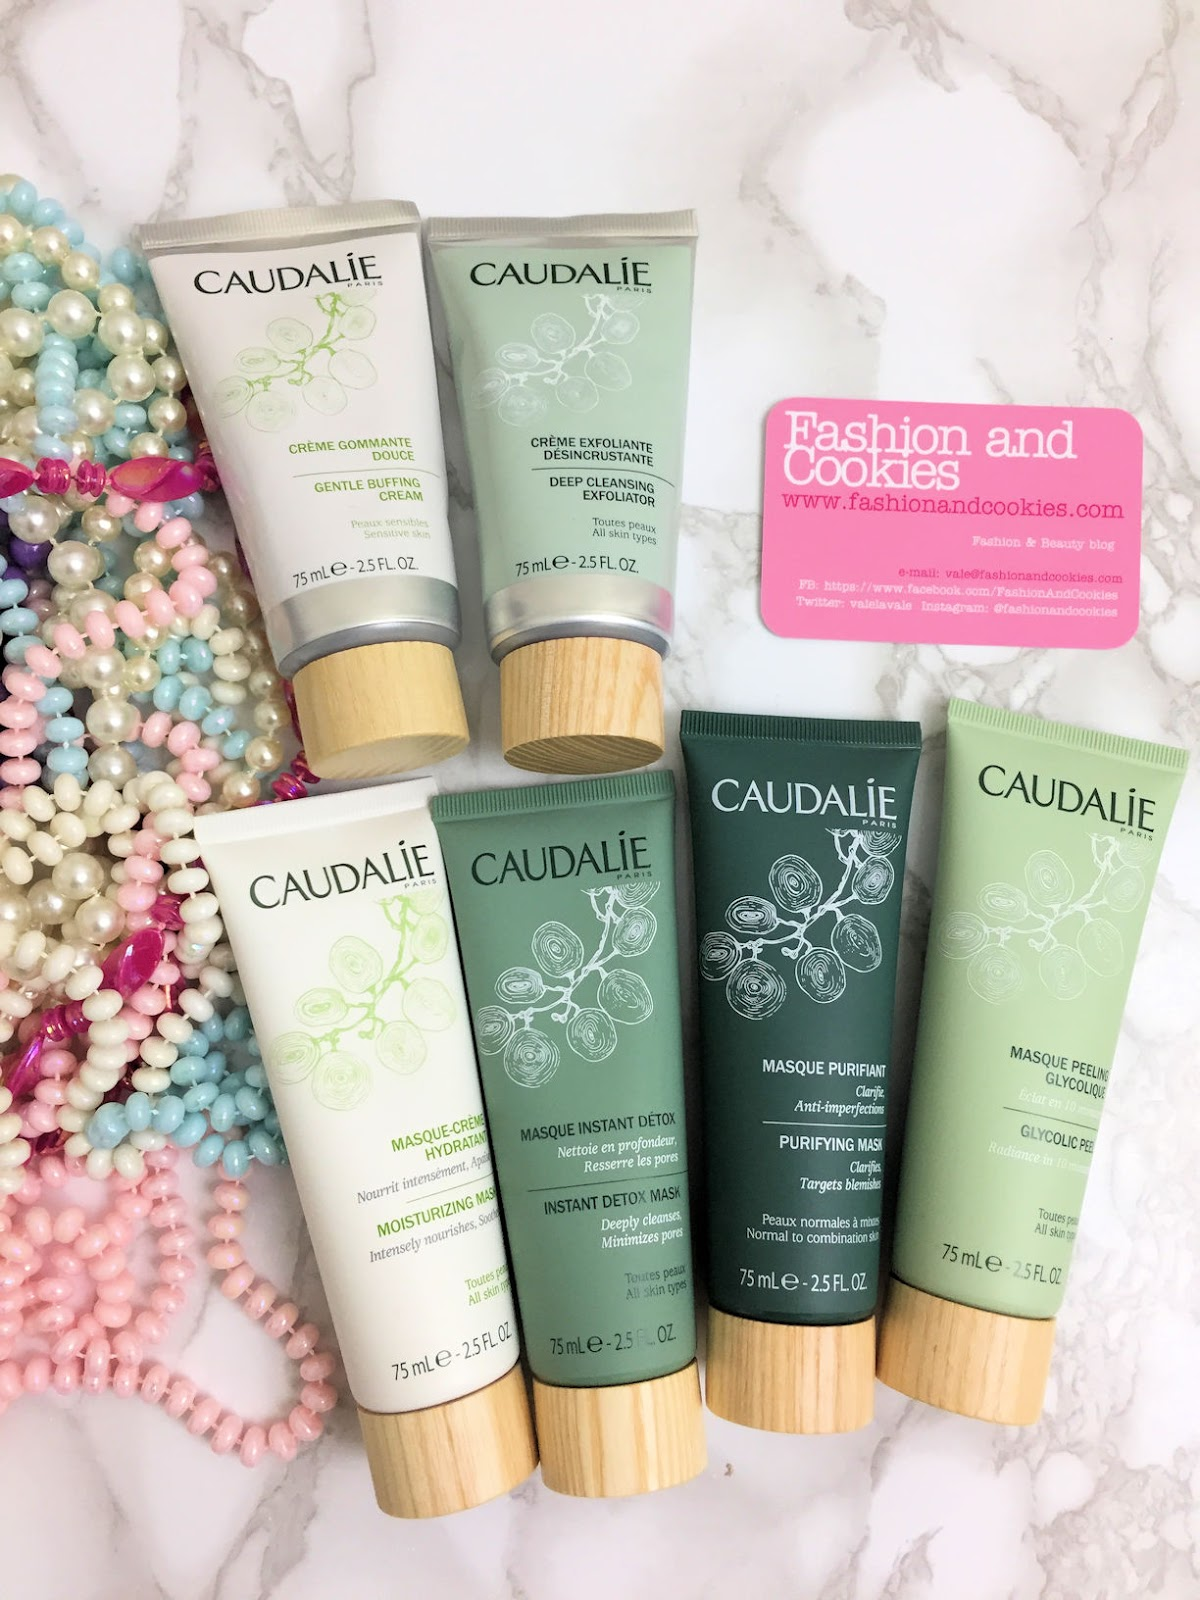 Caudalie skincare: collezione maschere e gommage su Fashion and Cookies beauty blog, beauty blogger